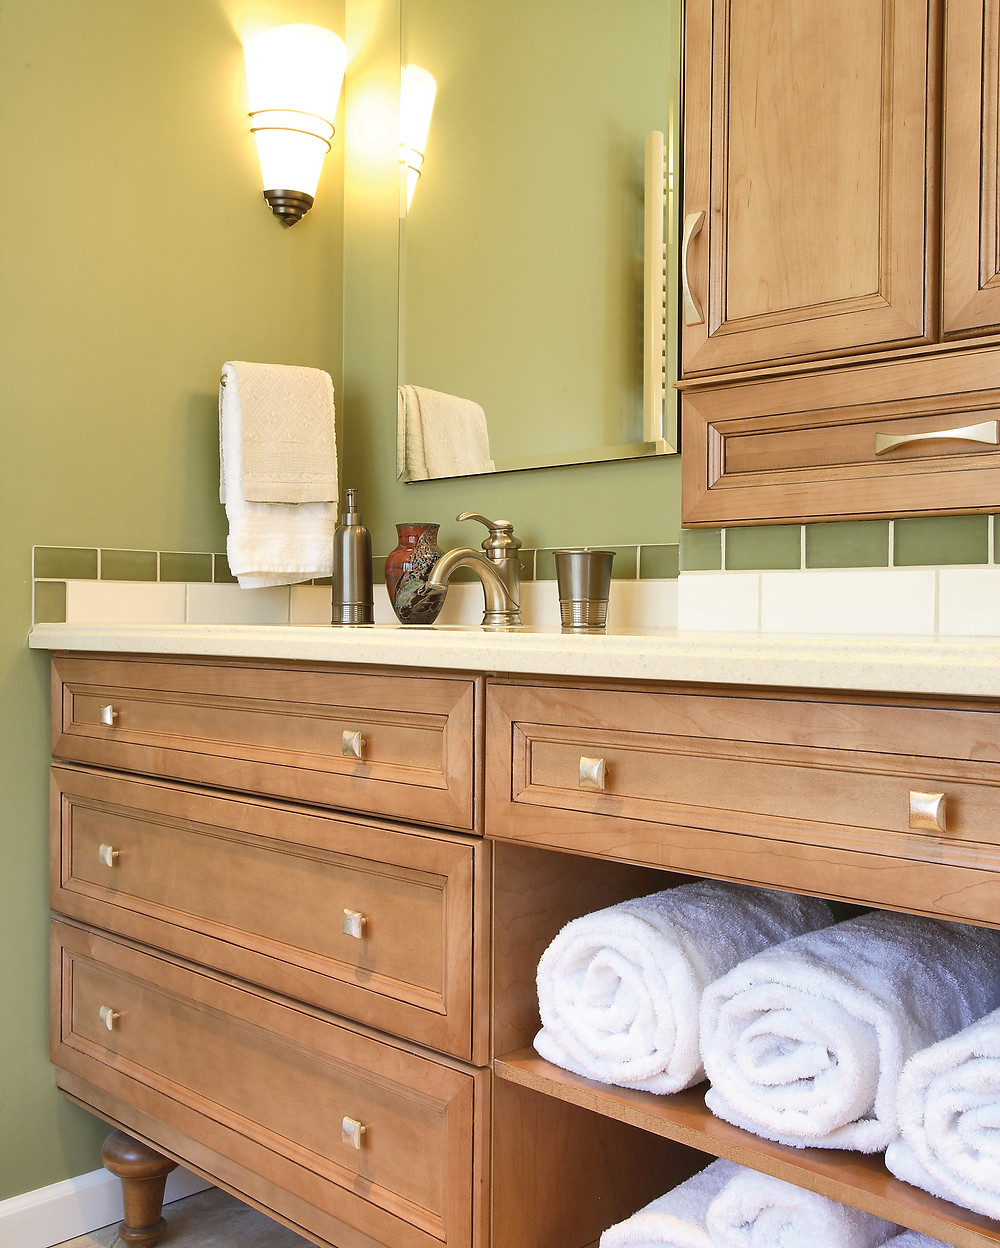 Green bathroom wall color wooden vanity with storage